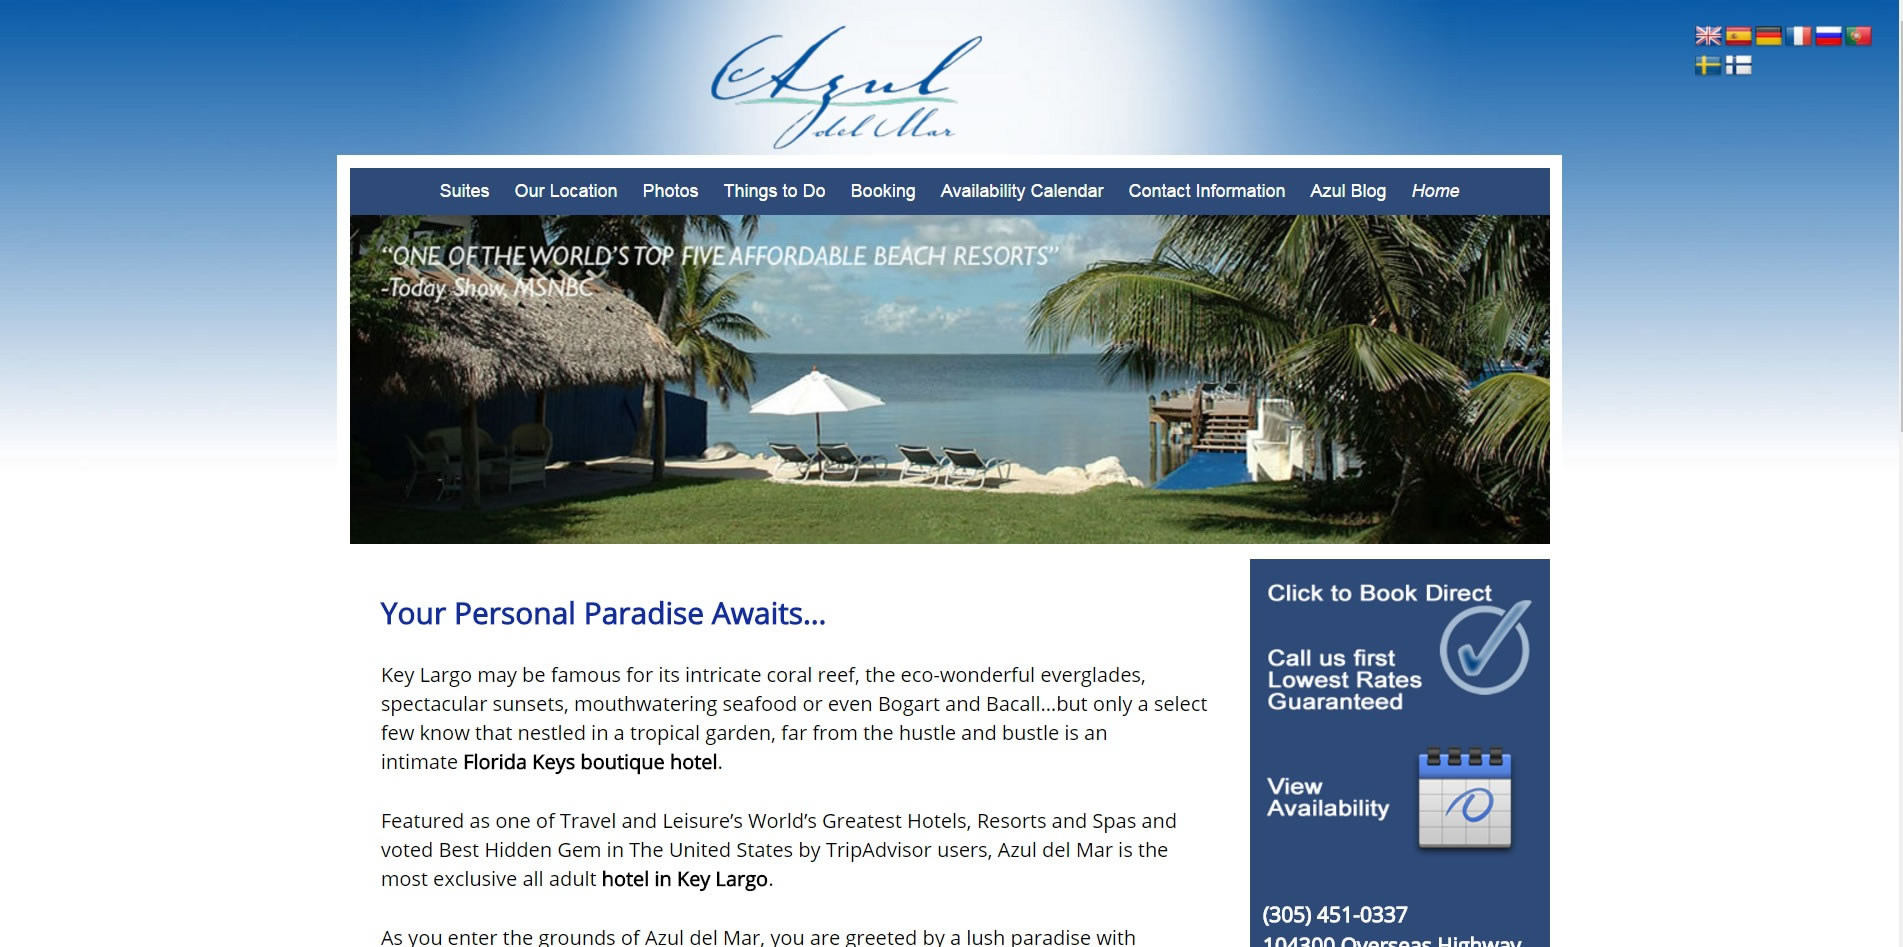 Azul Del Mar Exclusive Hotel in Key Largo in the Florida Keys